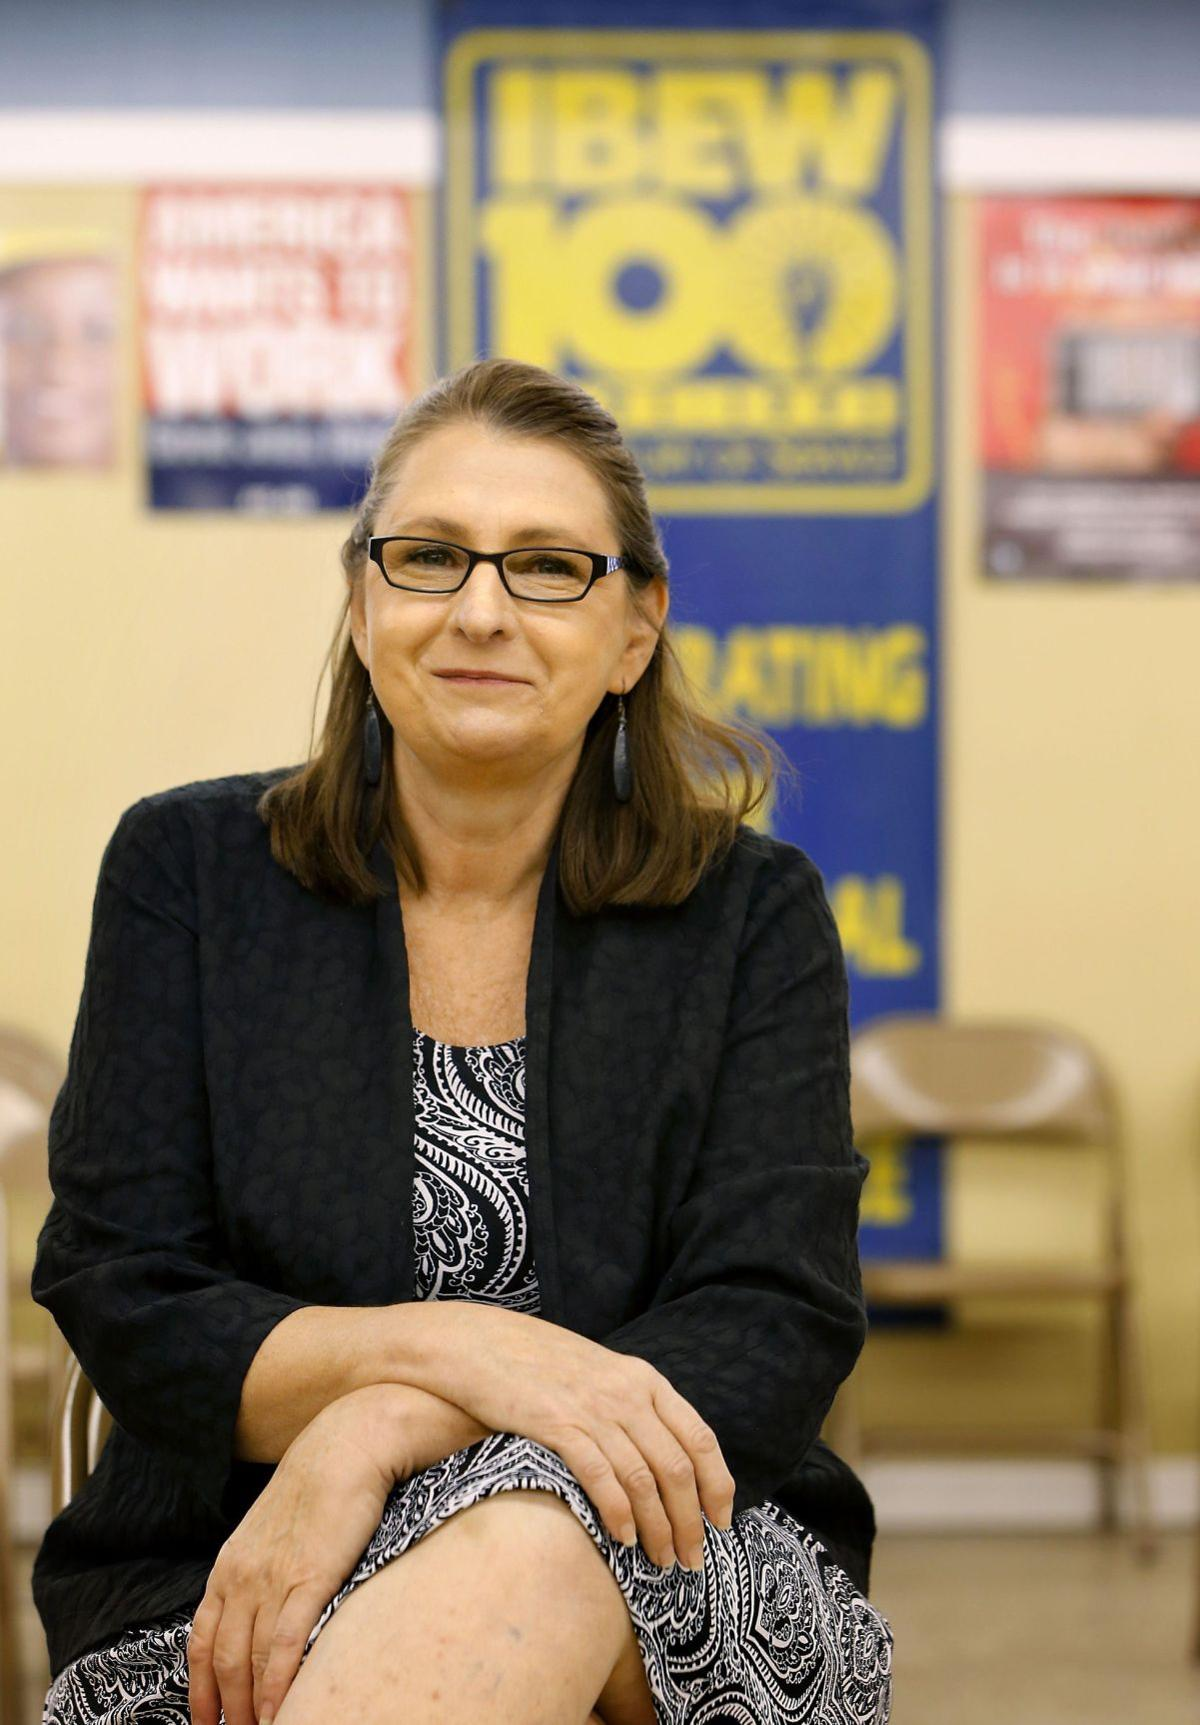 Personal experiences shape S.C. AFL-CIO's President Erin McKee